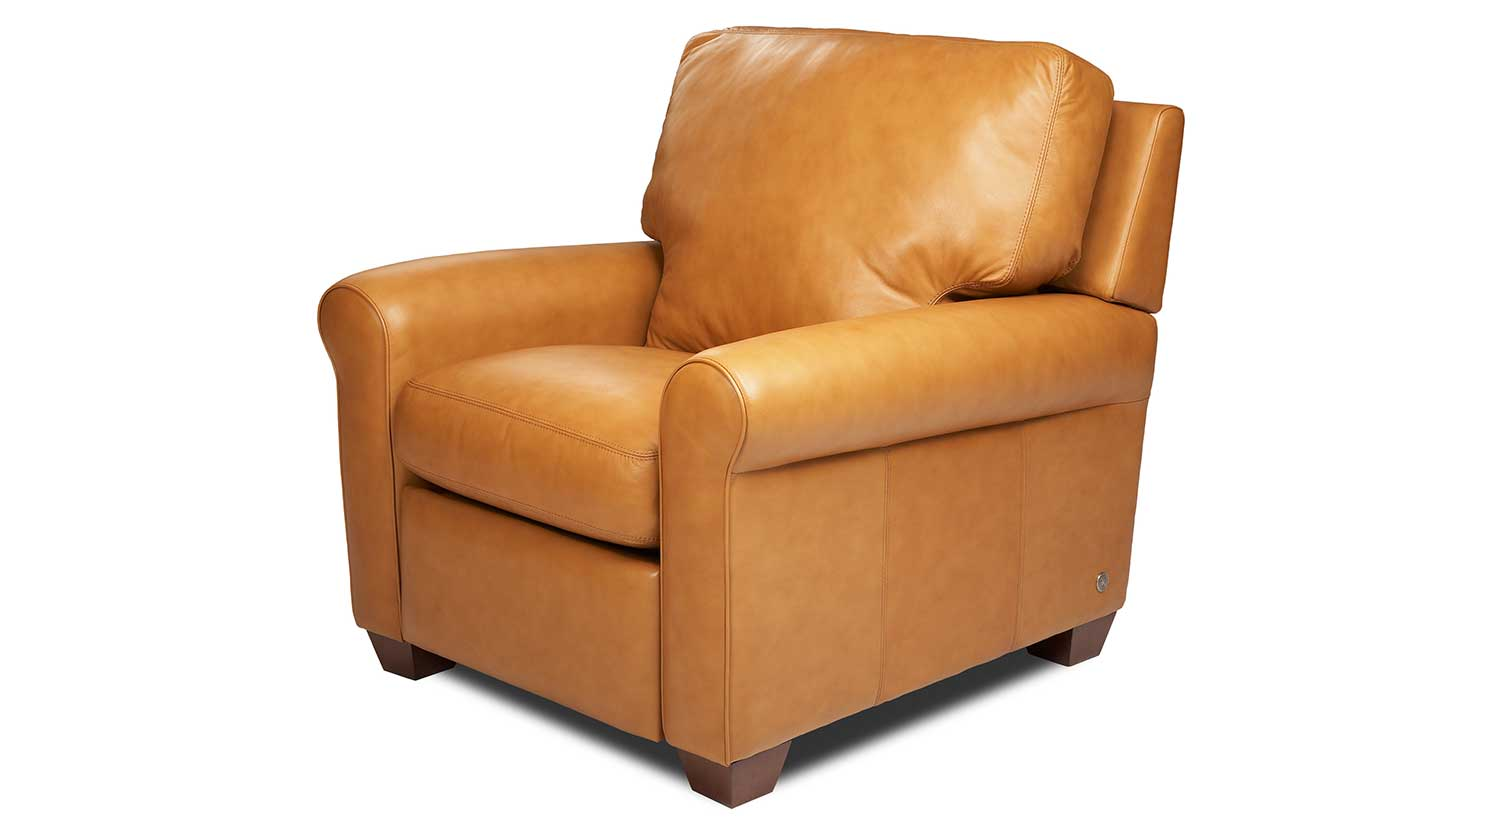 Stupendous Circle Furniture Savoy Chair Classic Recliners Ma Short Links Chair Design For Home Short Linksinfo